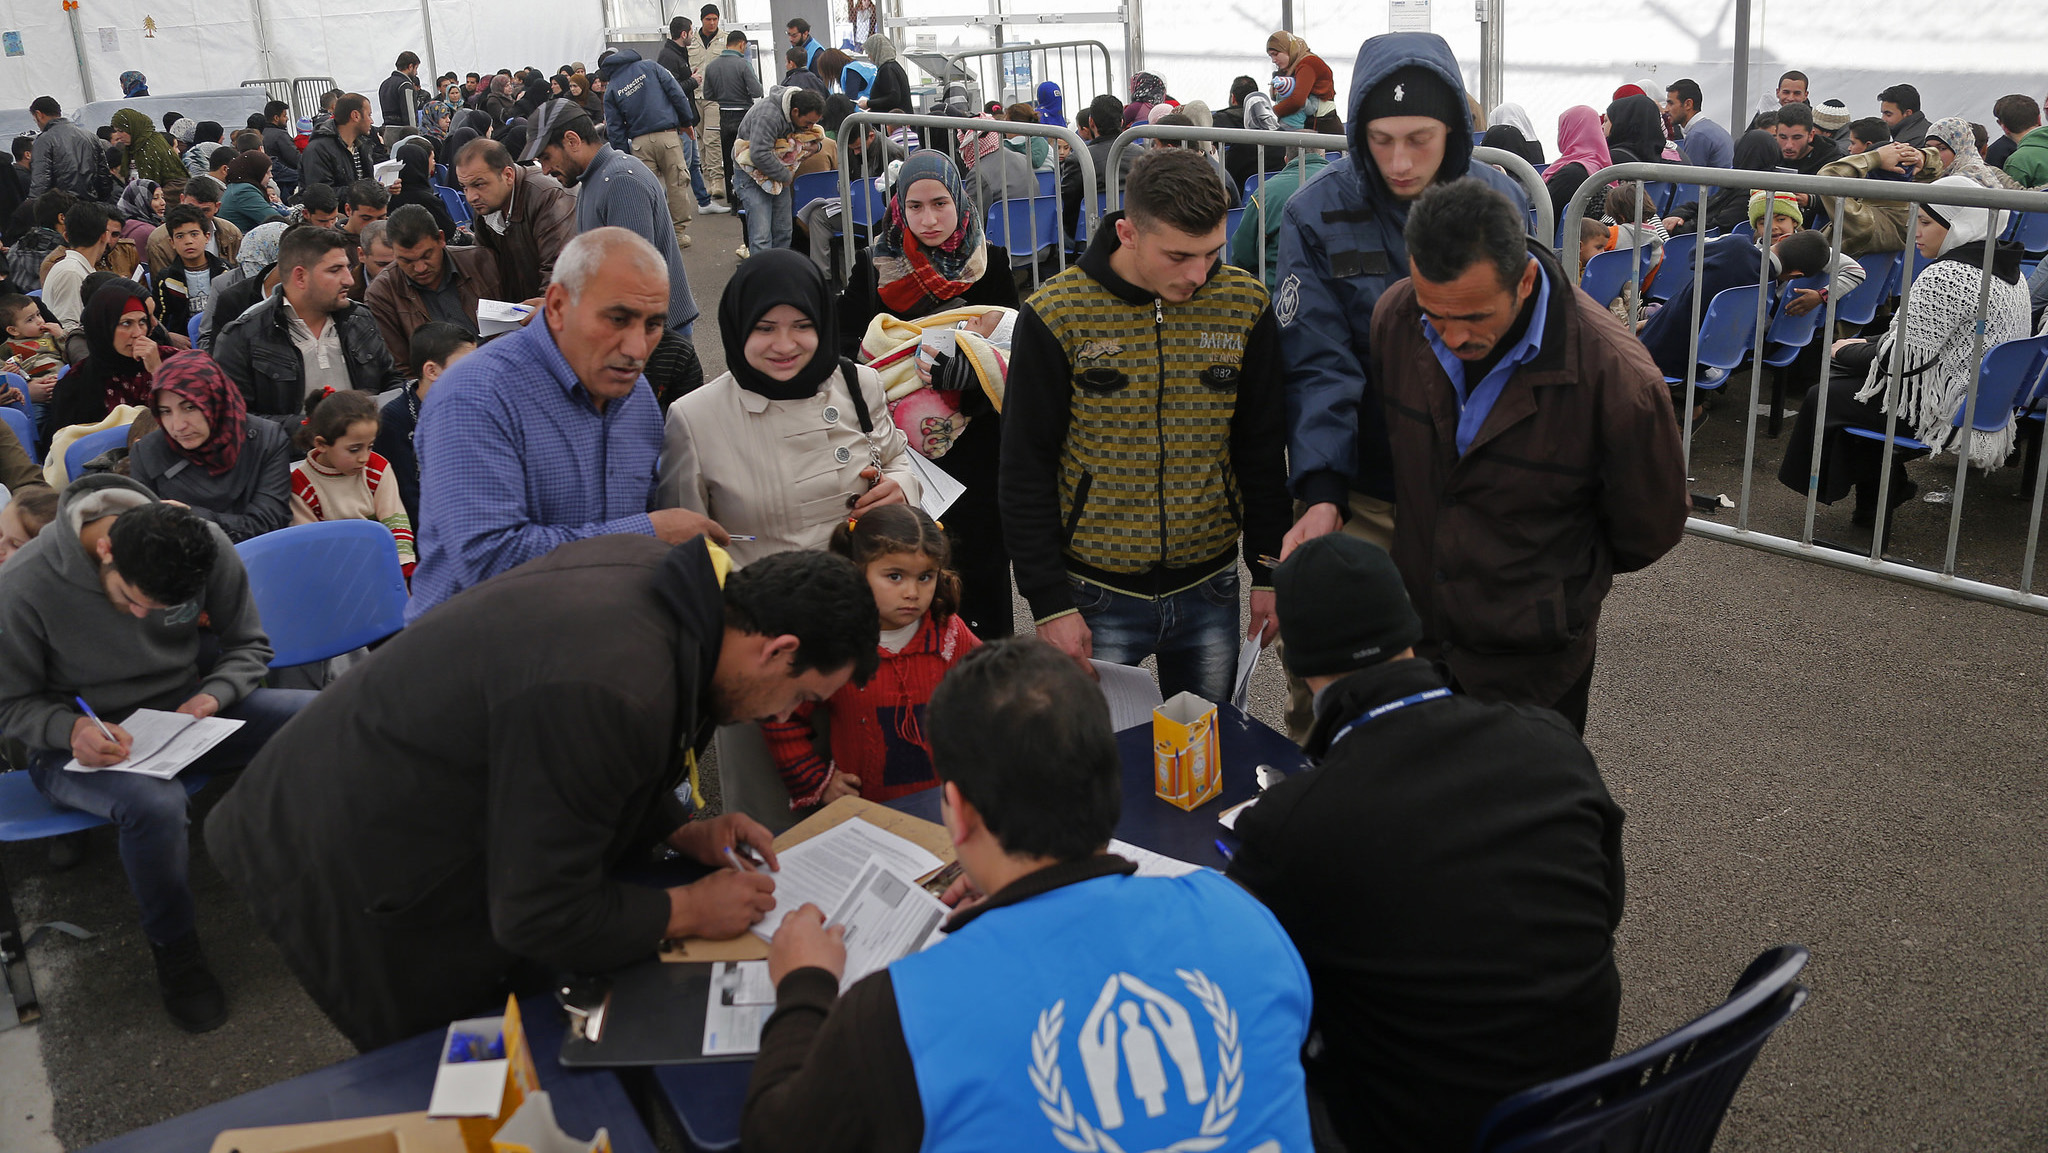 A family submitting an application at the UNHCR registration center in Tripoli, Lebanon. © Mohamed Azakir/World Bank